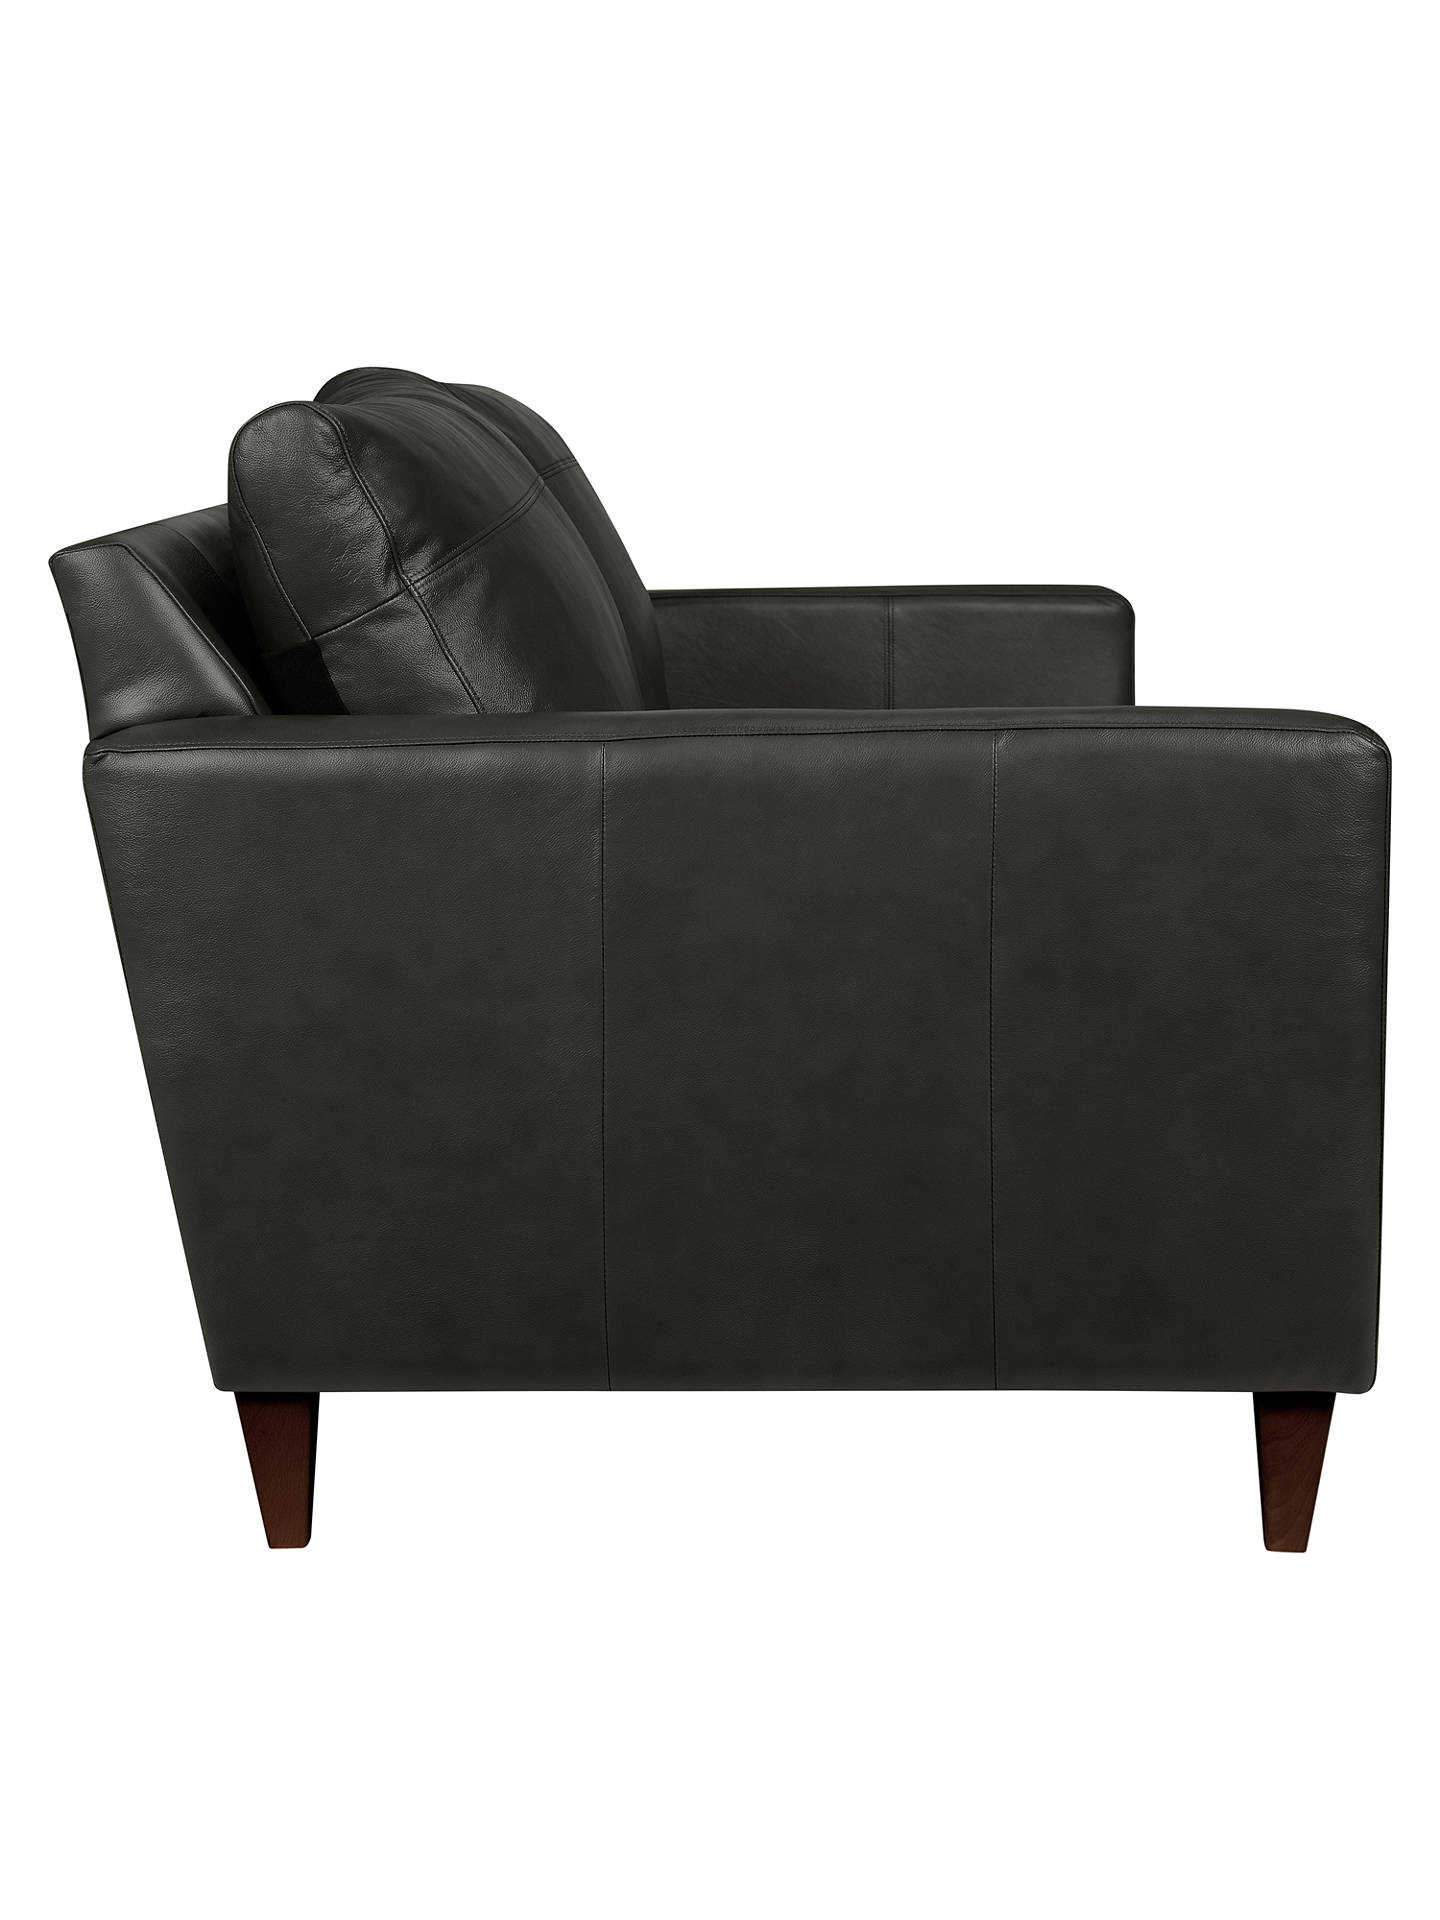 Buy John Lewis & Partners Bailey Leather Medium 2 Seater Sofa, Dark Leg, Winchester Anthracite Online at johnlewis.com